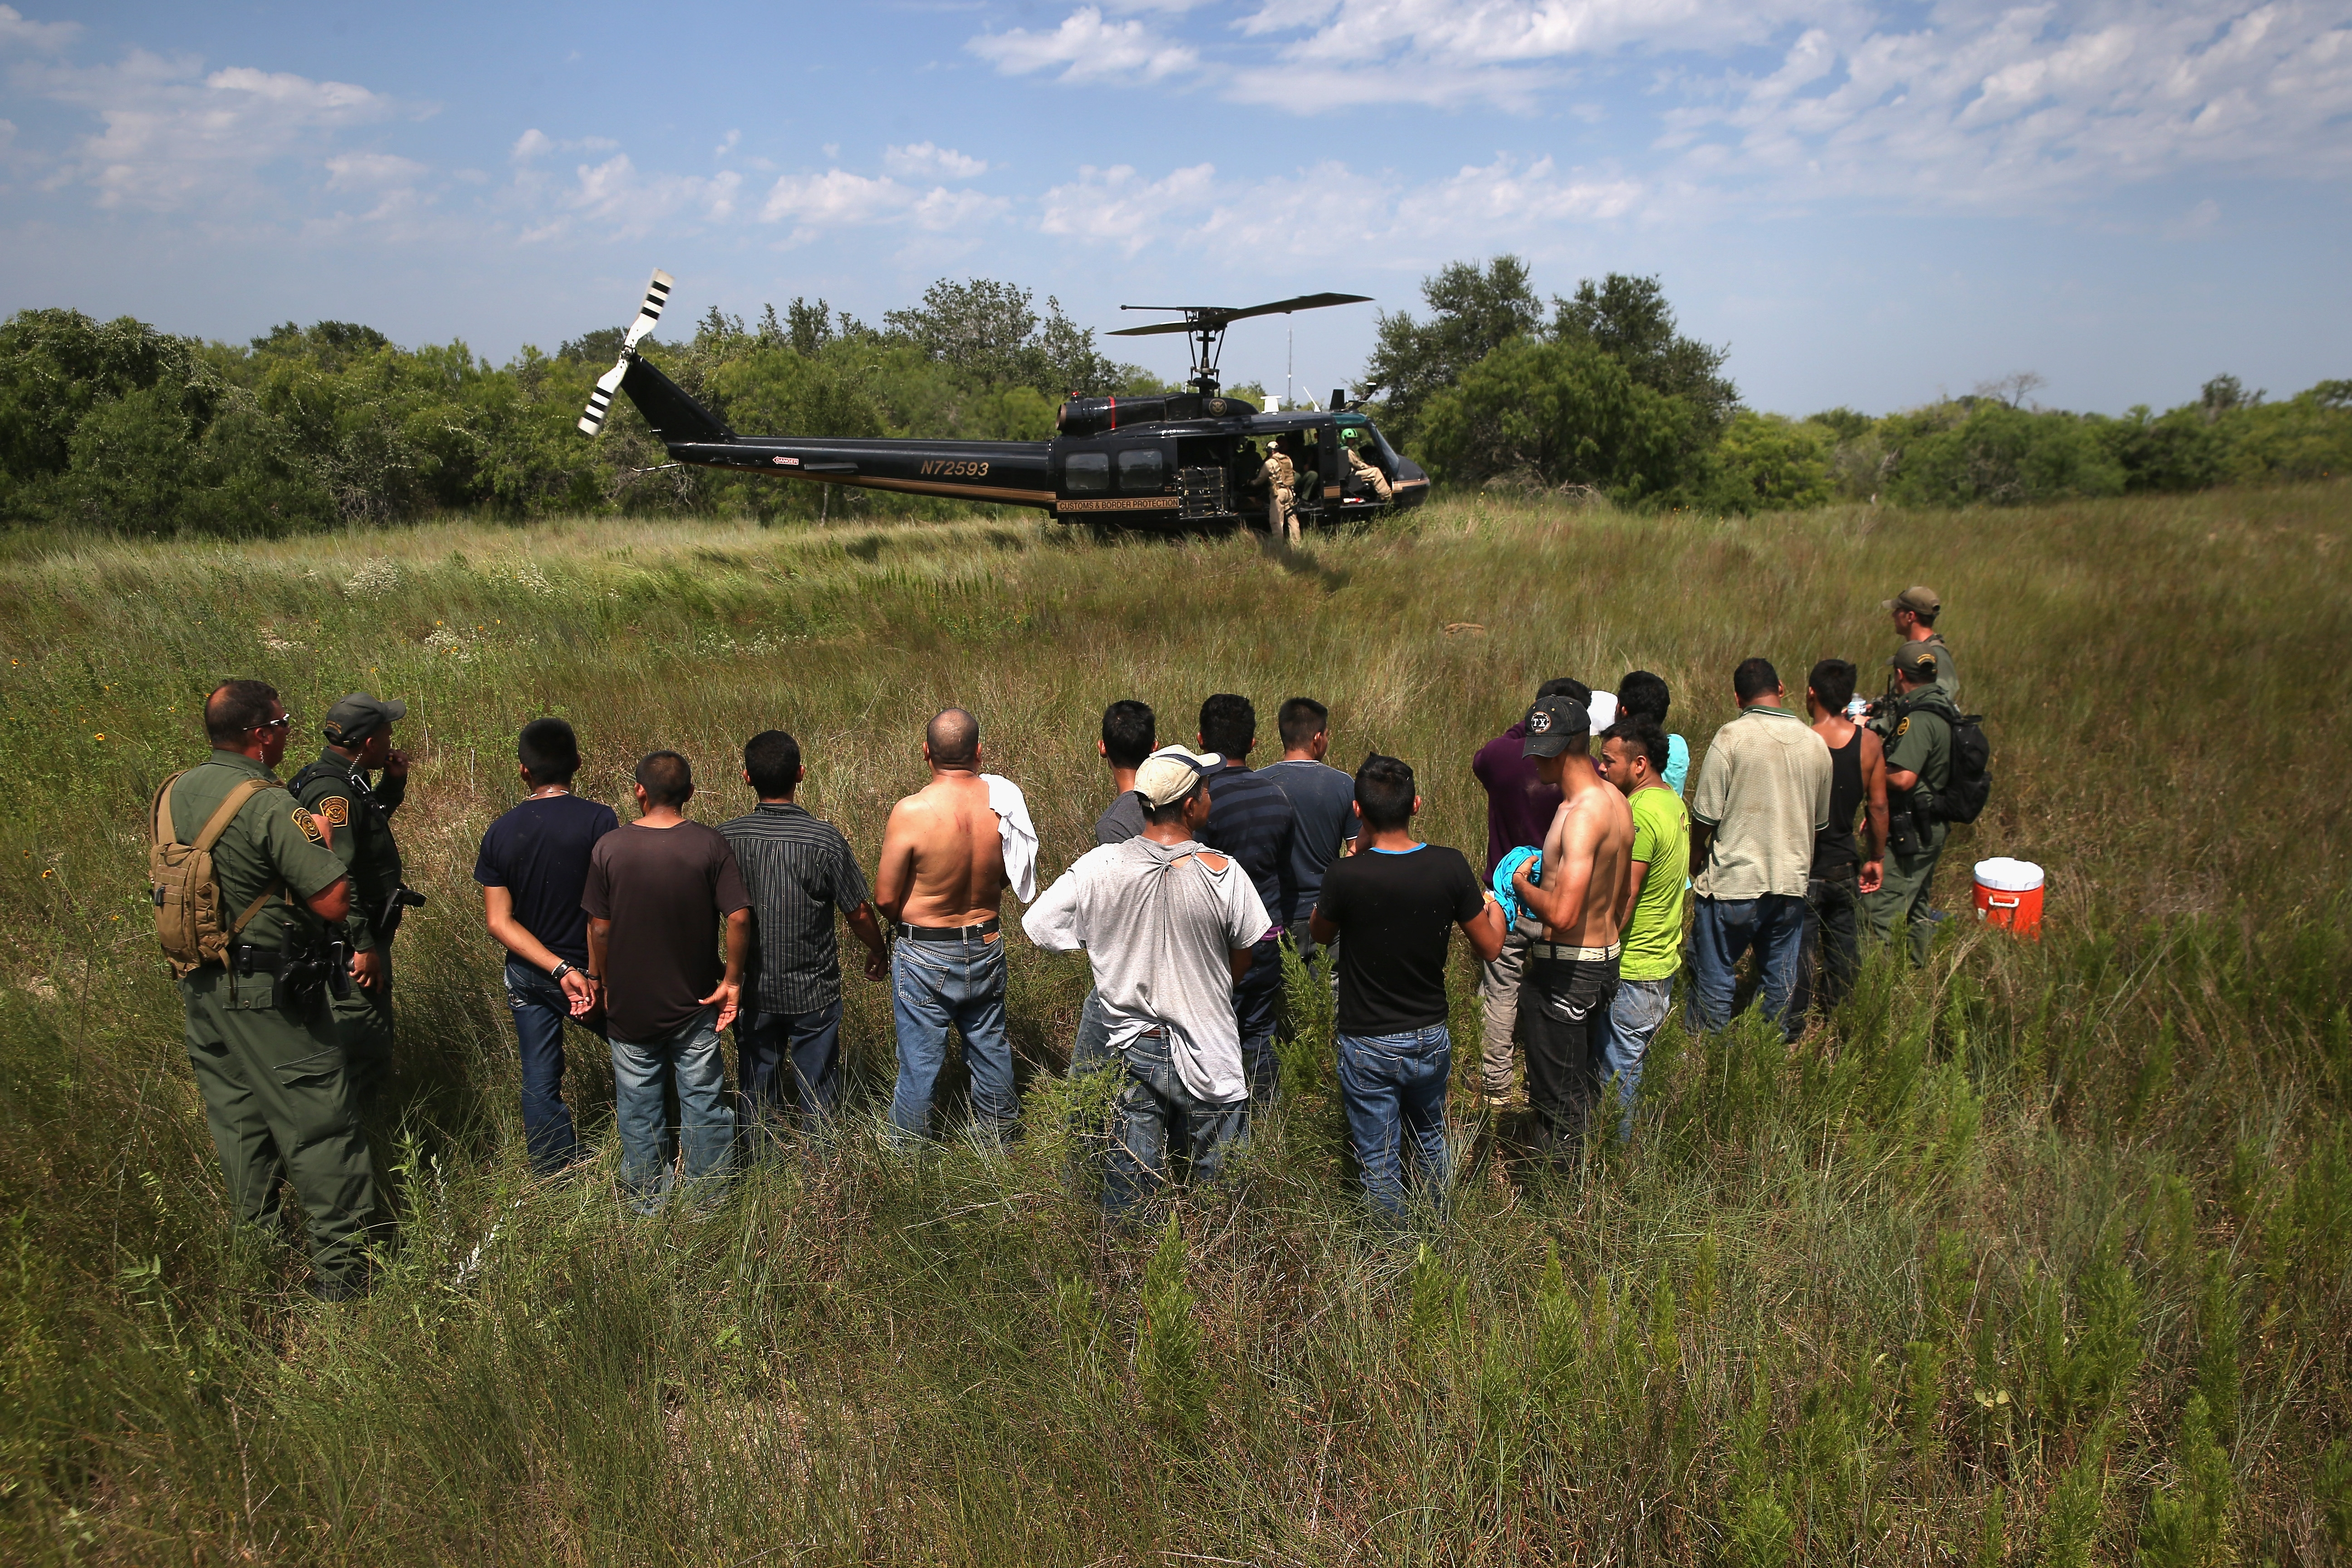 U.S. Border Patrol agents guard undocumented immigrants on July 22 near Falfurrias, Texas, before sending them to a processing center. Texas ranchers have invited armed militias to patrol private land on the U.S.-Mexico border.